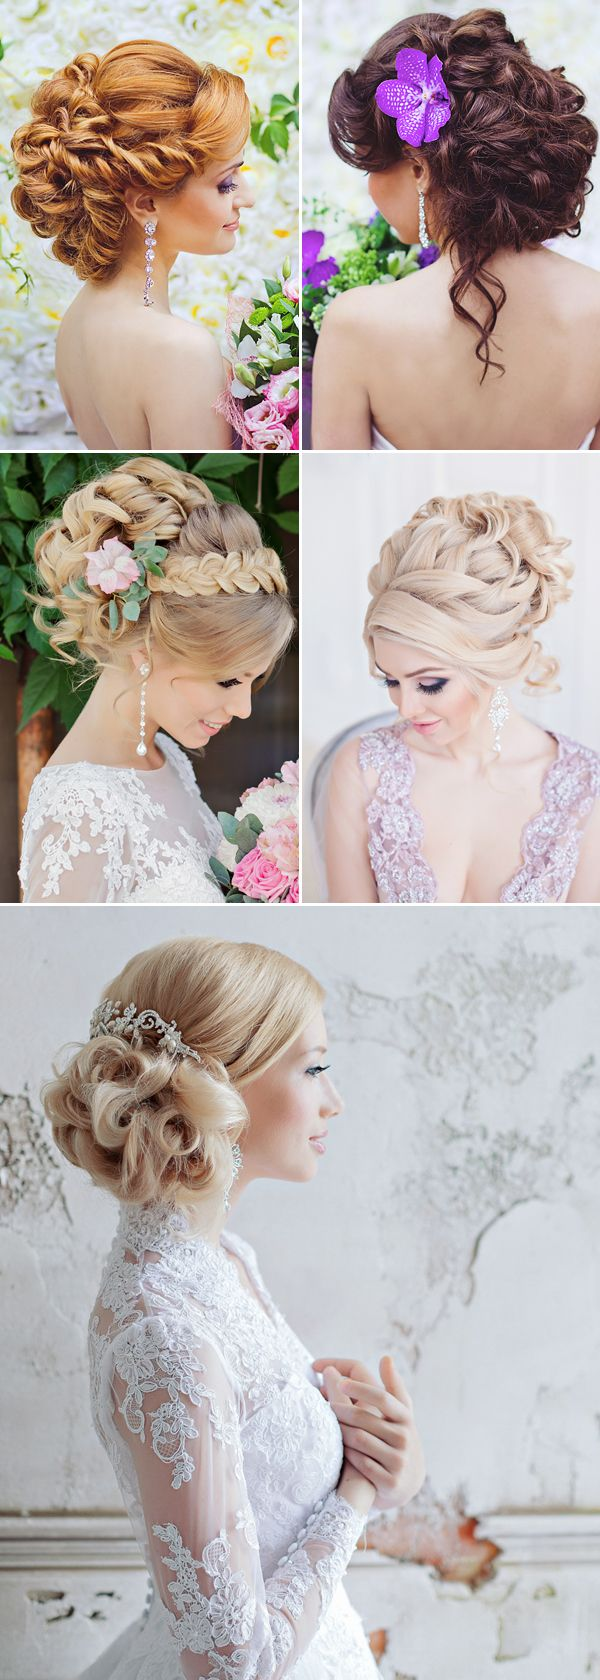 30 Seriously Hairstyles for Weddings (with Tutorial) | http://www.deerpearlflowers.com/30-seriously-hairstyles-for-weddings-with-tutorial/ #GetMarriedCo #getmarried #wedding